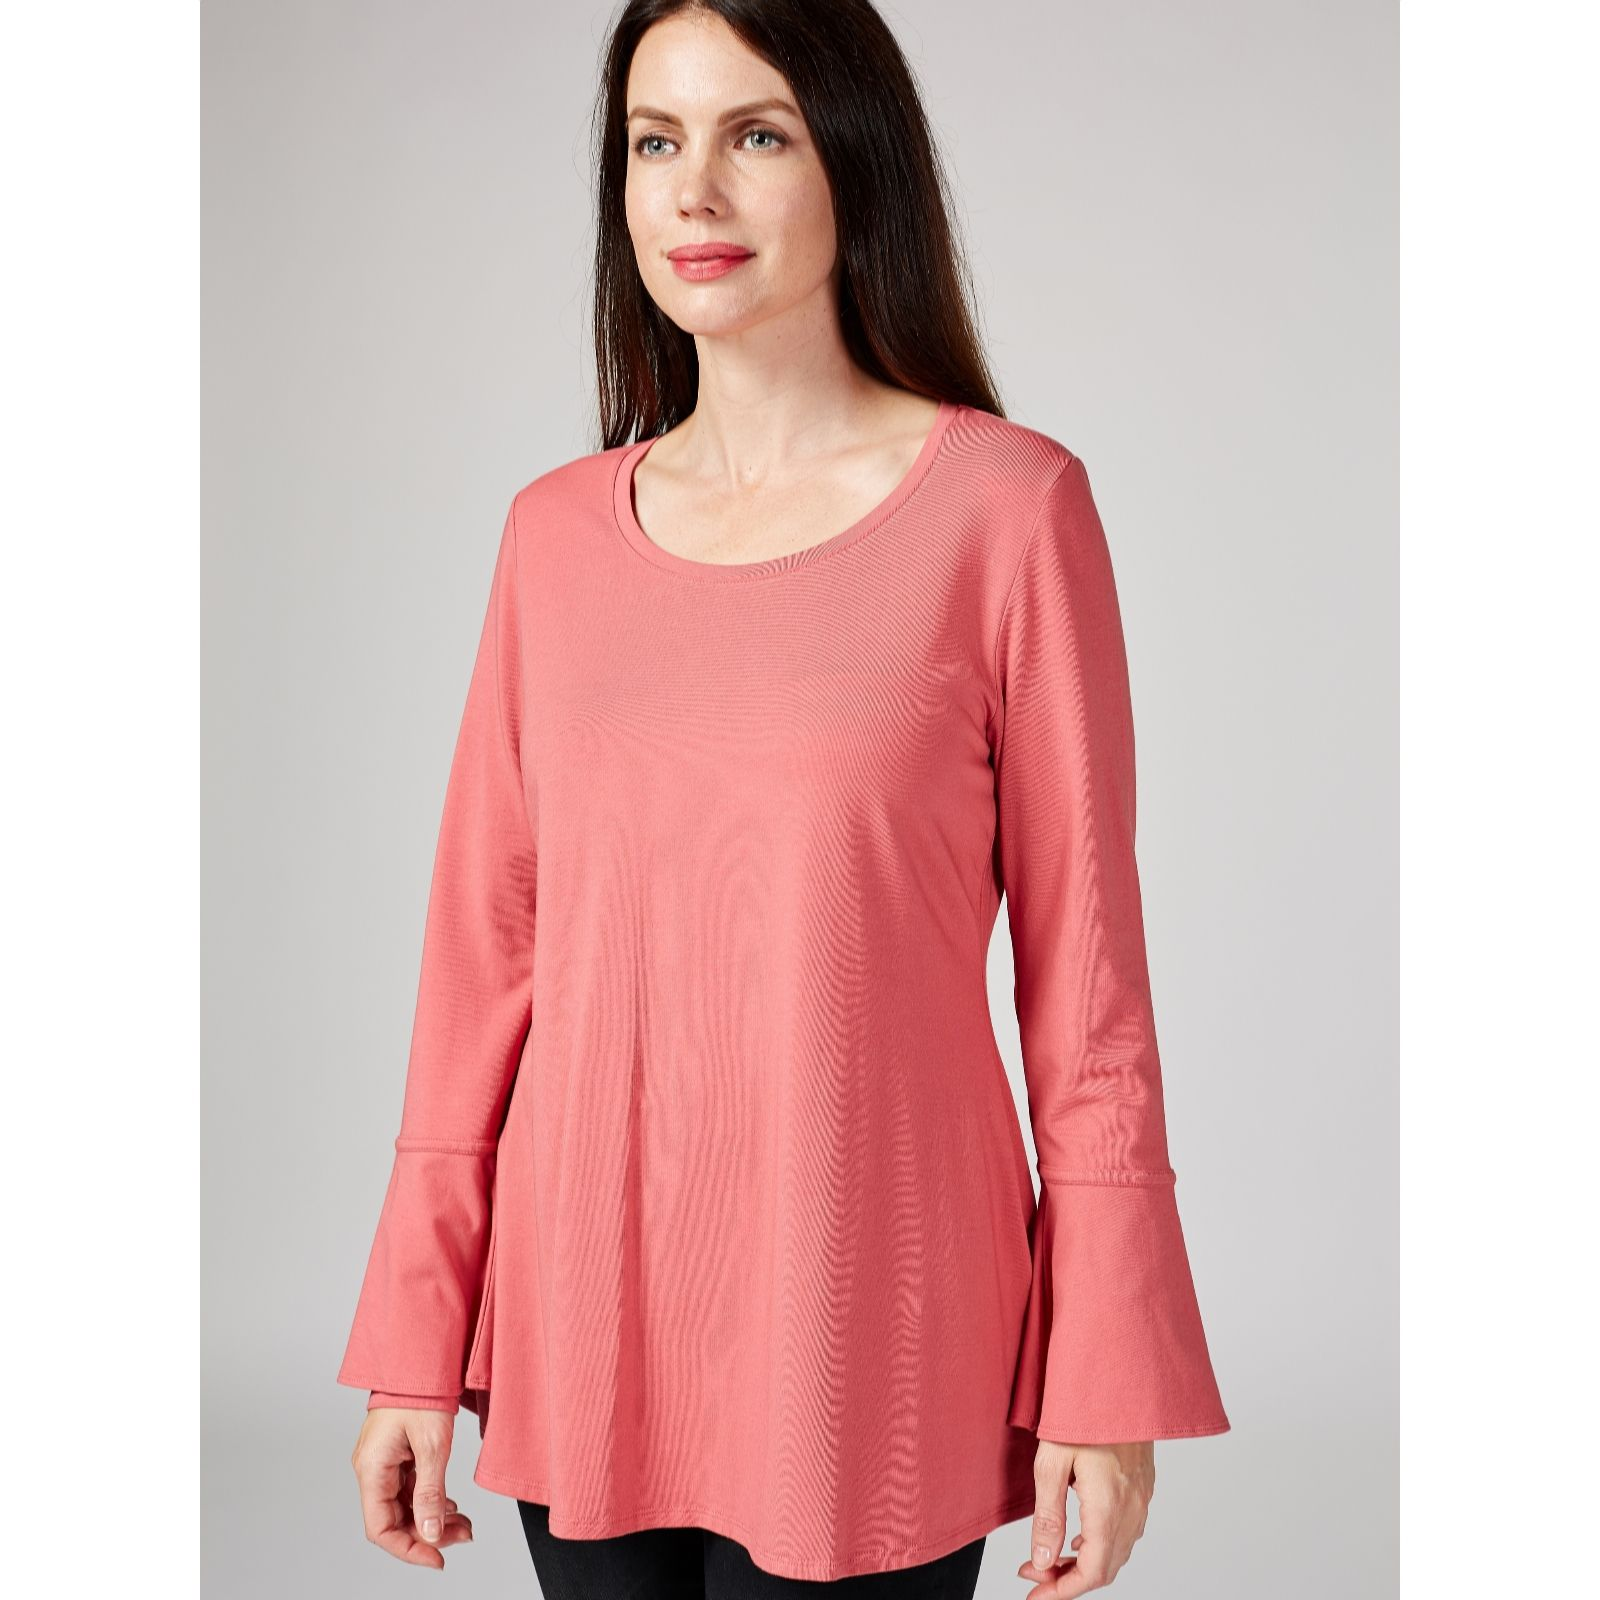 1b9dc993a17 Isaac Mizrahi Live Scoop Neck Trapeze Top with Fluted Sleeves ...